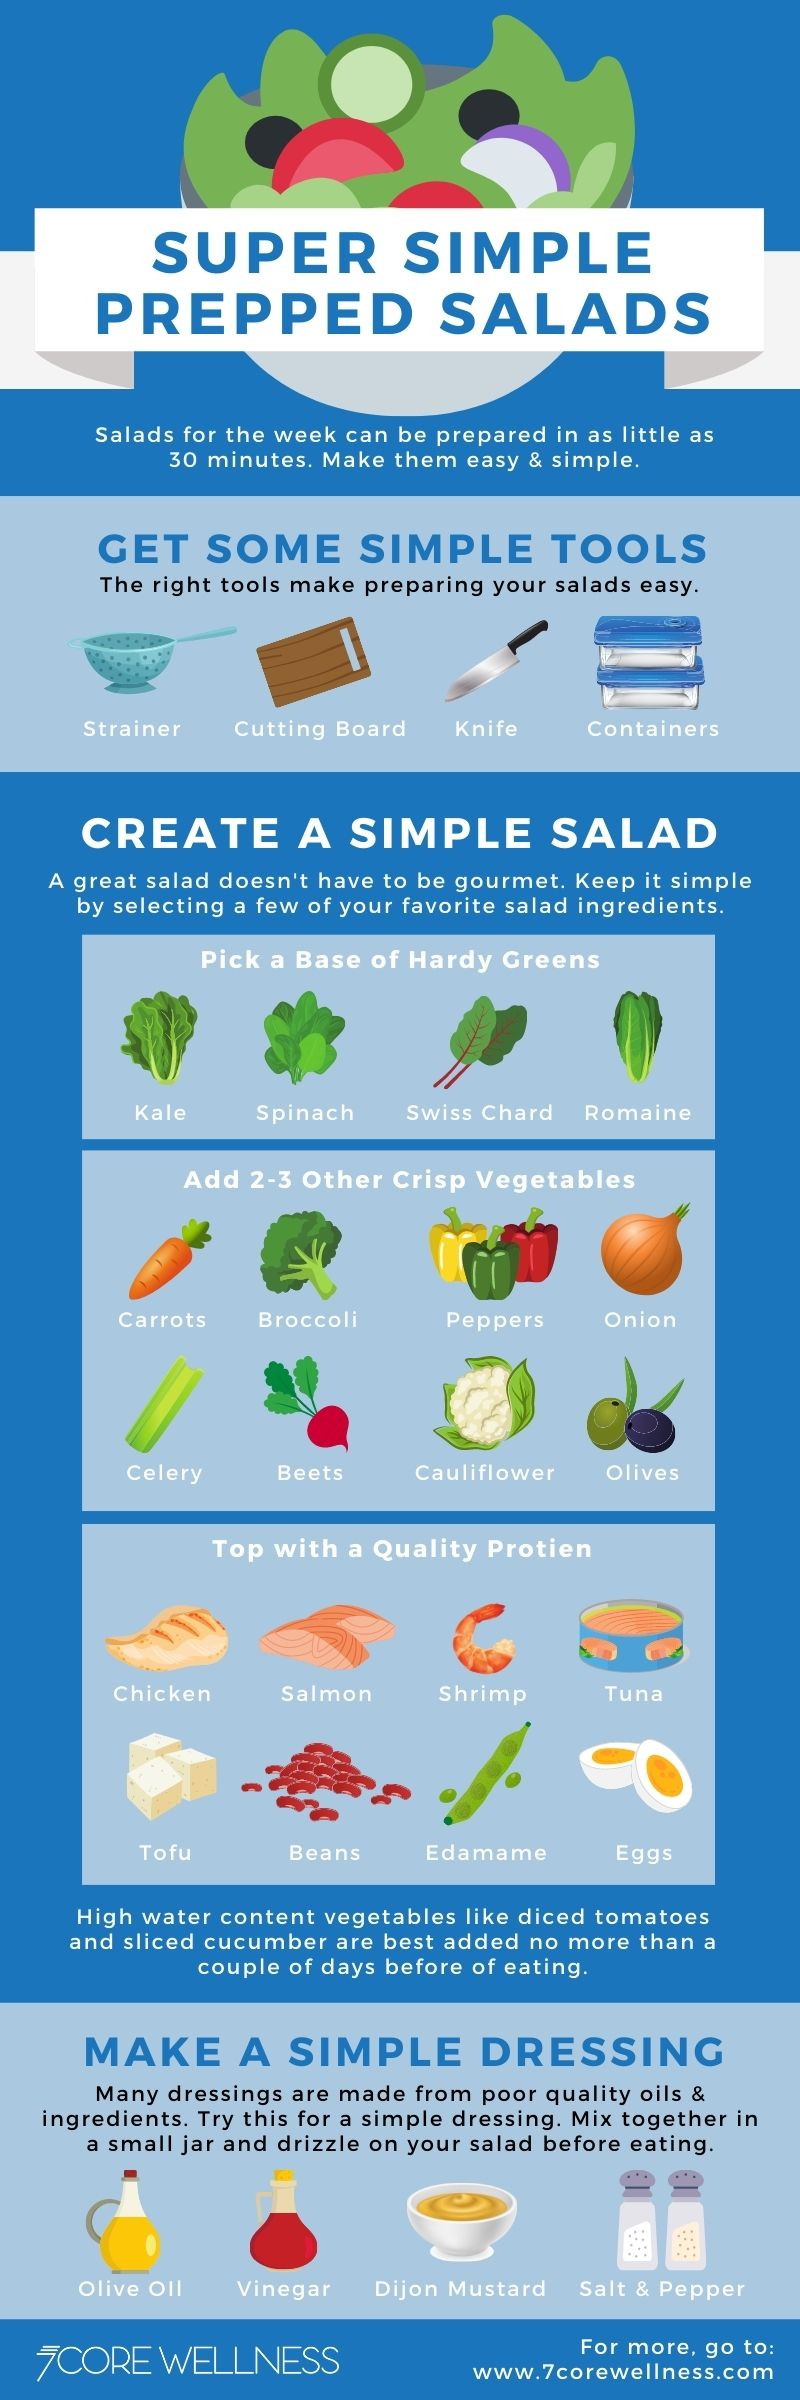 Super Simple Prepped Salads Infographic